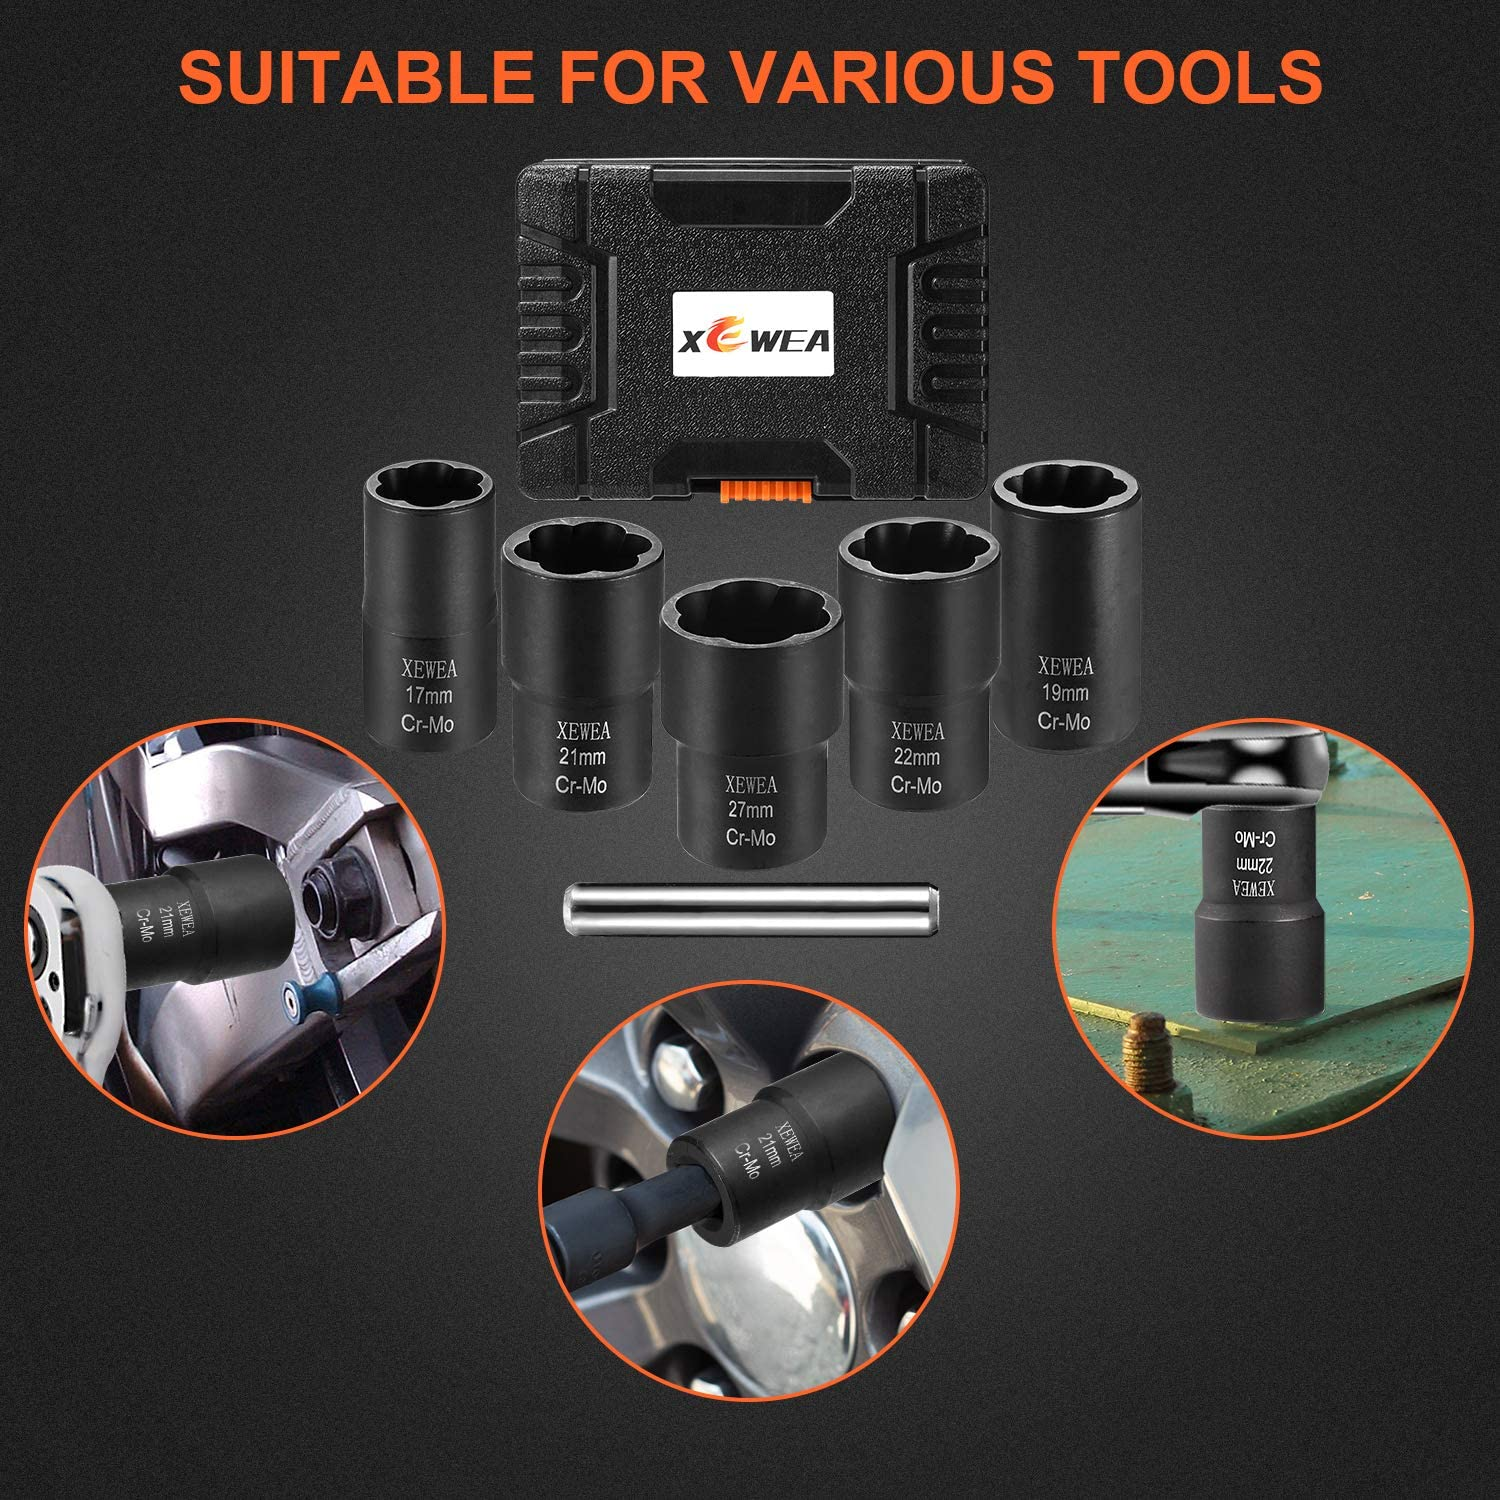 XEWEA Deep Impact Bolt Extractor Set with Center Punch Bar Nut Removal Extractor Socket Tool Metric 17mm 19mm 21mm 22mm 27mm 6Pcs